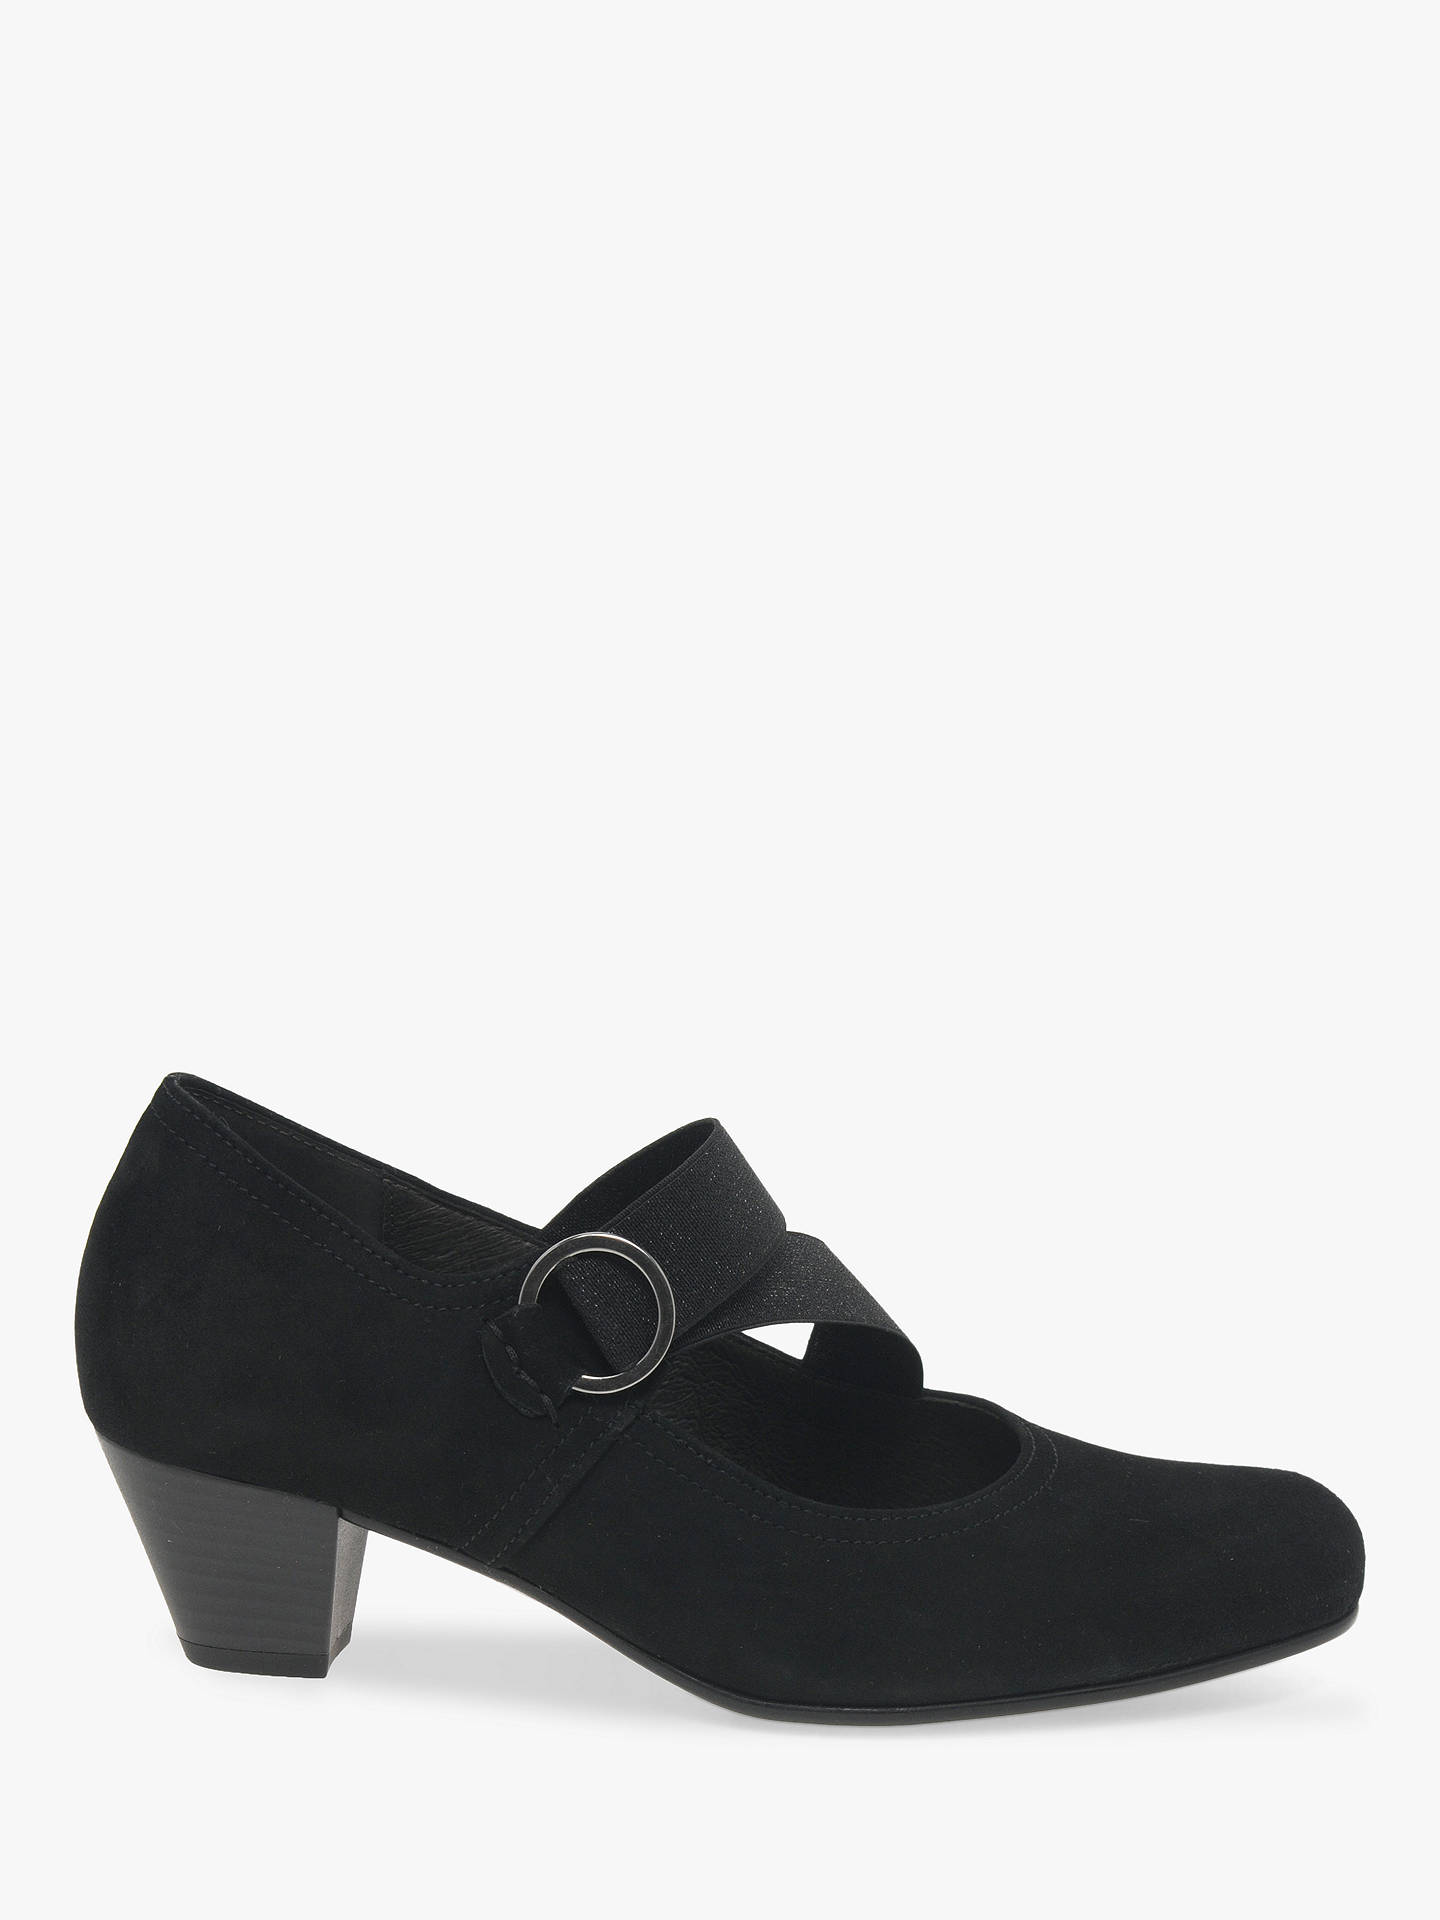 Gabor Strawberry Extra Wide Fit Suede Mary Jane Court Shoes, Black